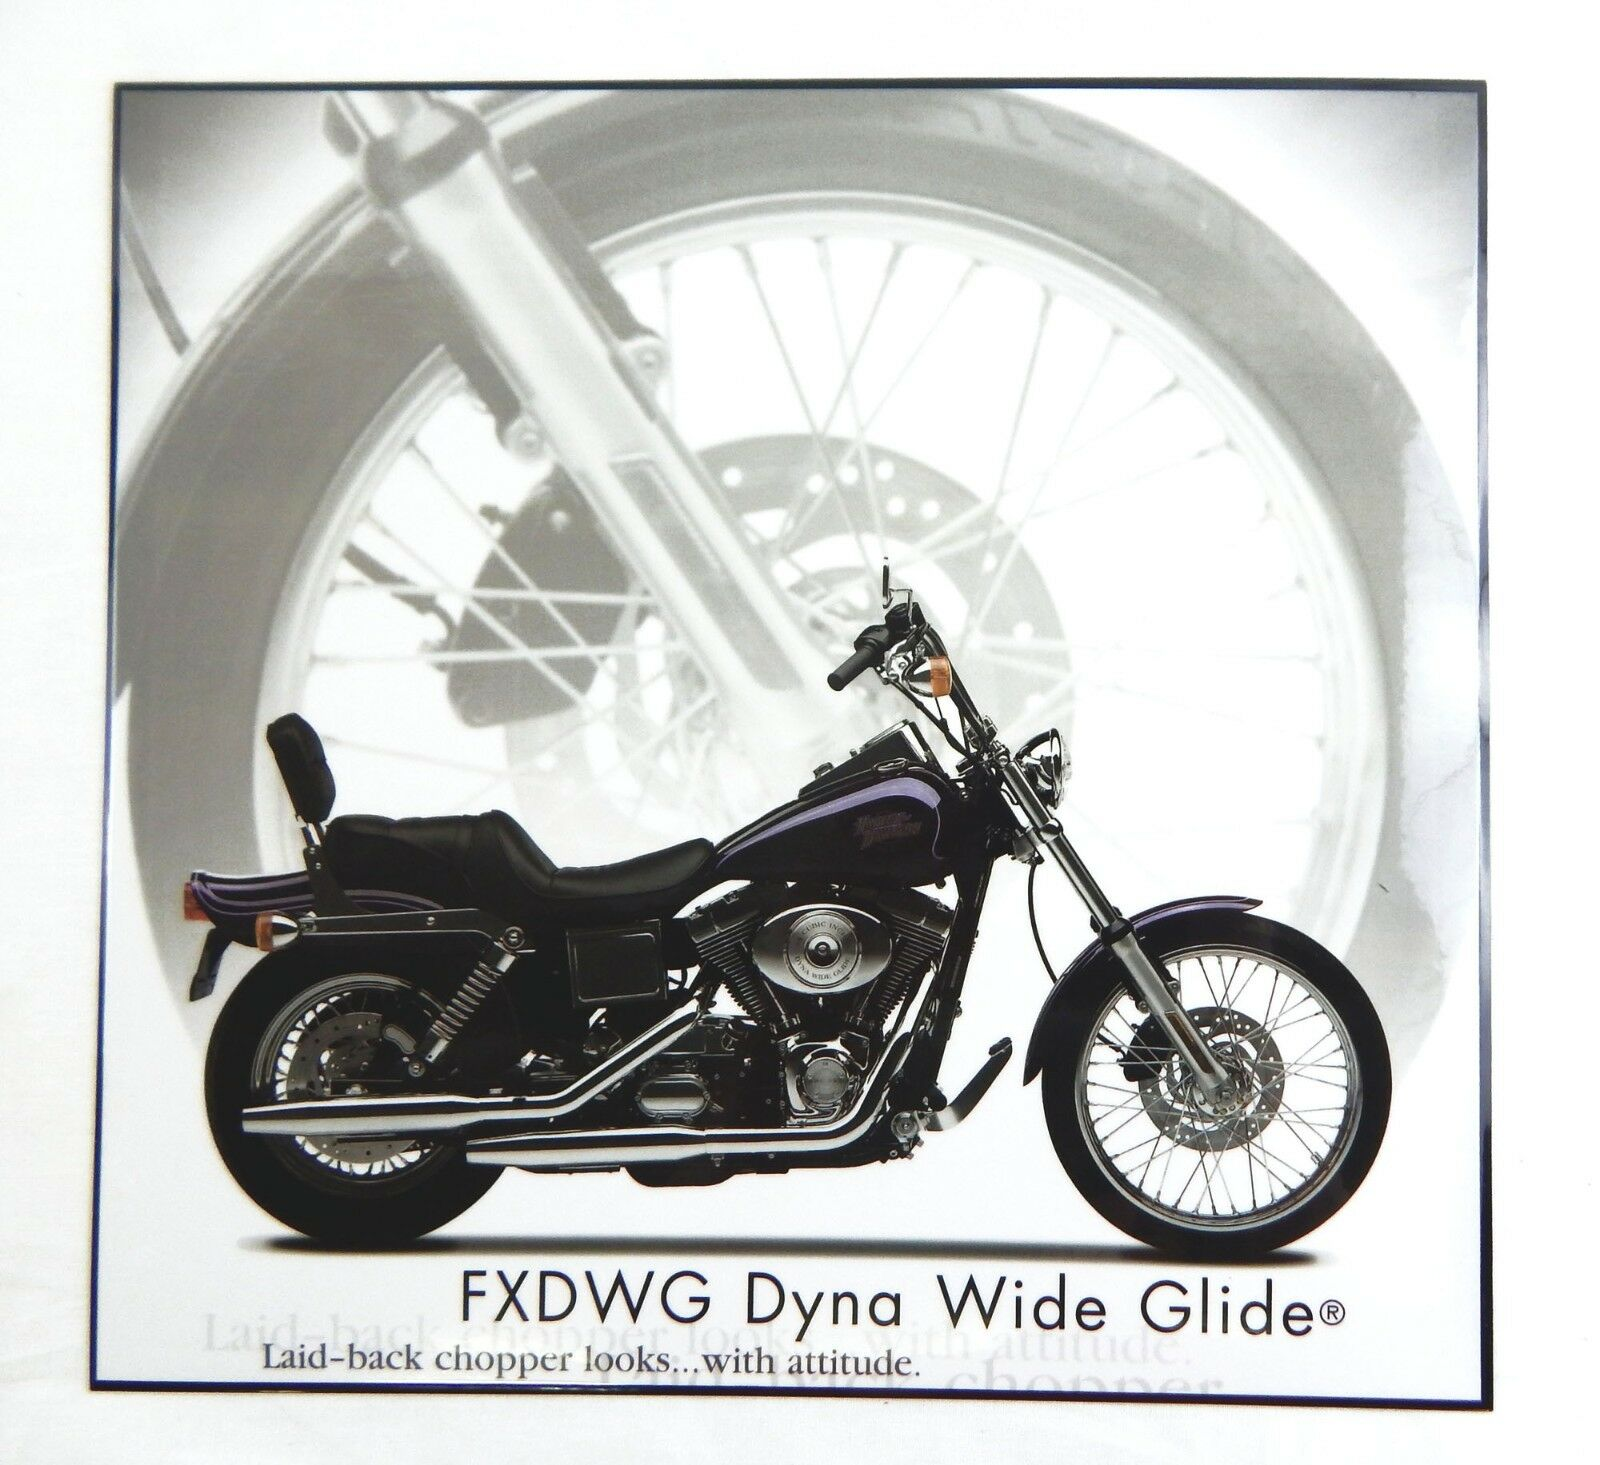 Harley Davidson FXDWG Dyna Wide Glide Motorcycle Laminated Print 1 of 1Only  1 available ...